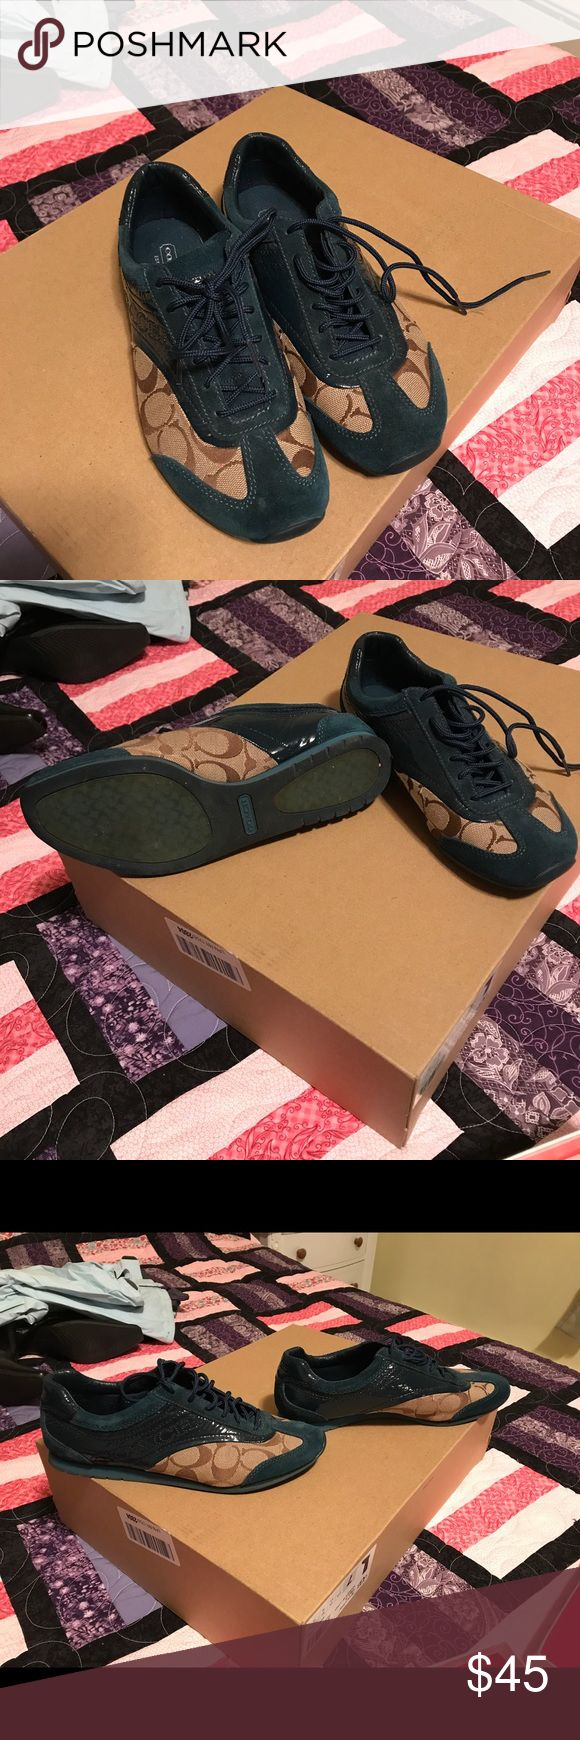 Coach Sneakers Size 8 Authentic coach sneakers size 8. In good condition. The turquoise color is suede and patent leather. Coach Shoes Sneakers